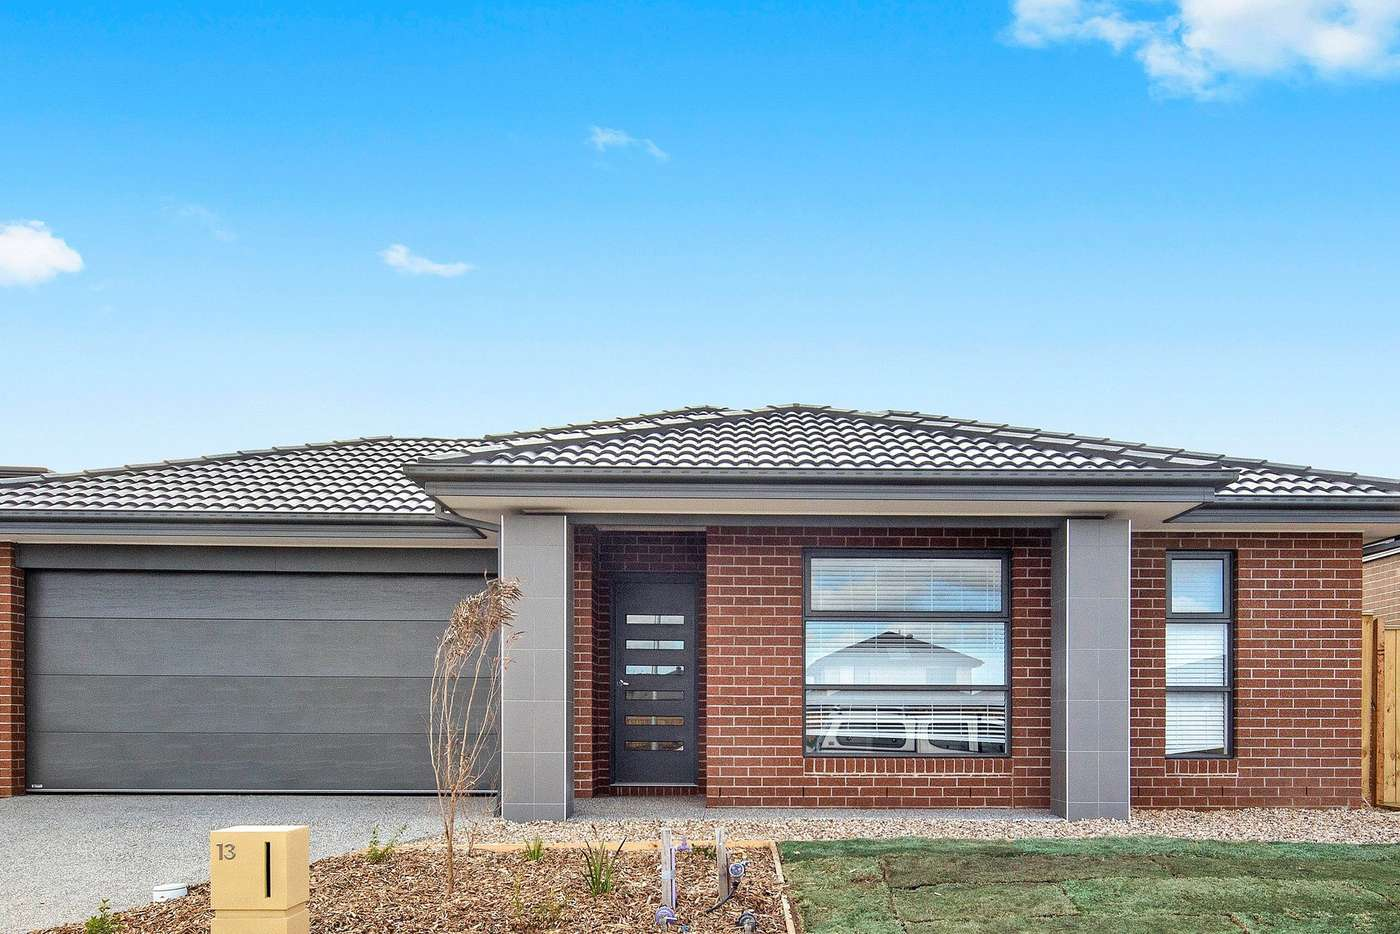 Main view of Homely house listing, 13 Weighbridge Avenue, Wyndham Vale VIC 3024